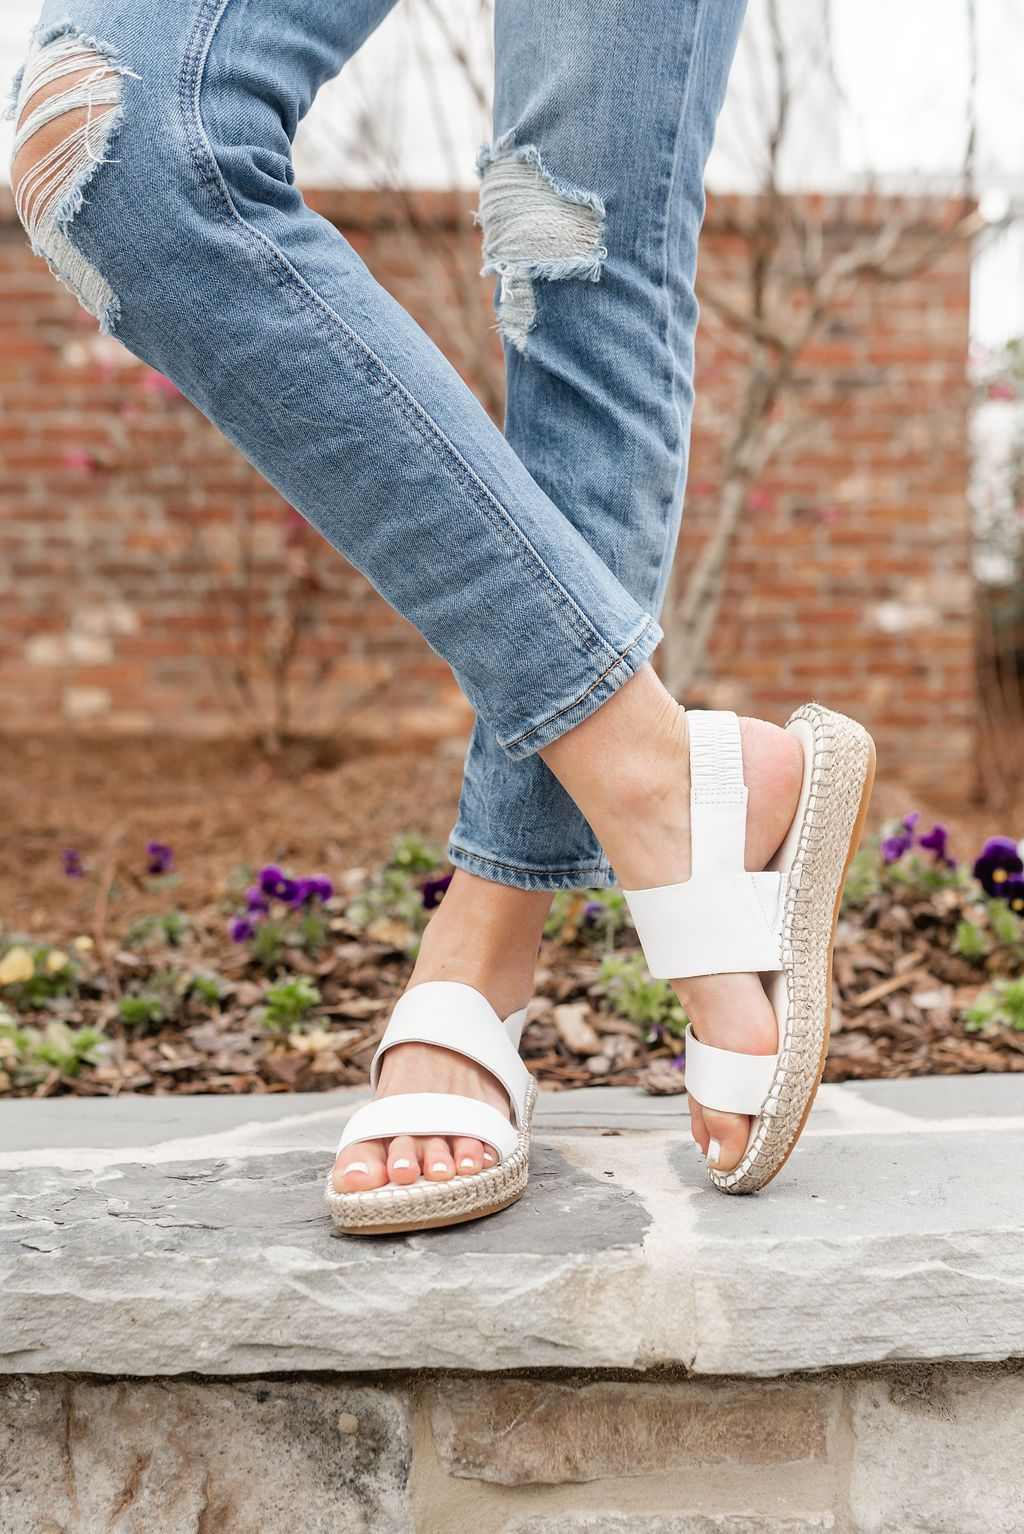 92e9a72505a Cloudfeel Espadrilles by Cole Haan + Life Update | Spring Style ...